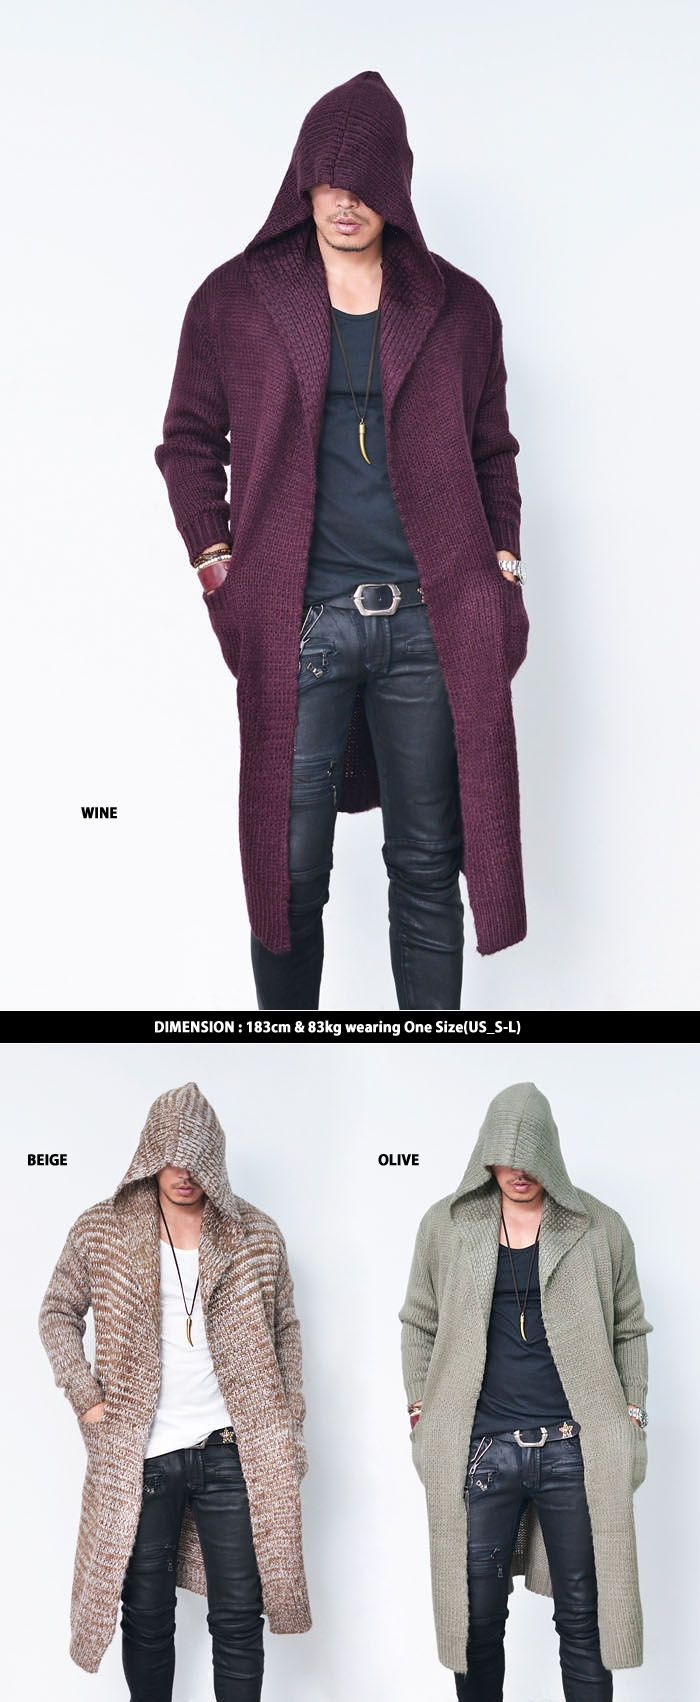 Big Hood Wool Cape Long Jacket-Cardigan 142 - Mens Fashion Clothing For An Attractive Guy Look